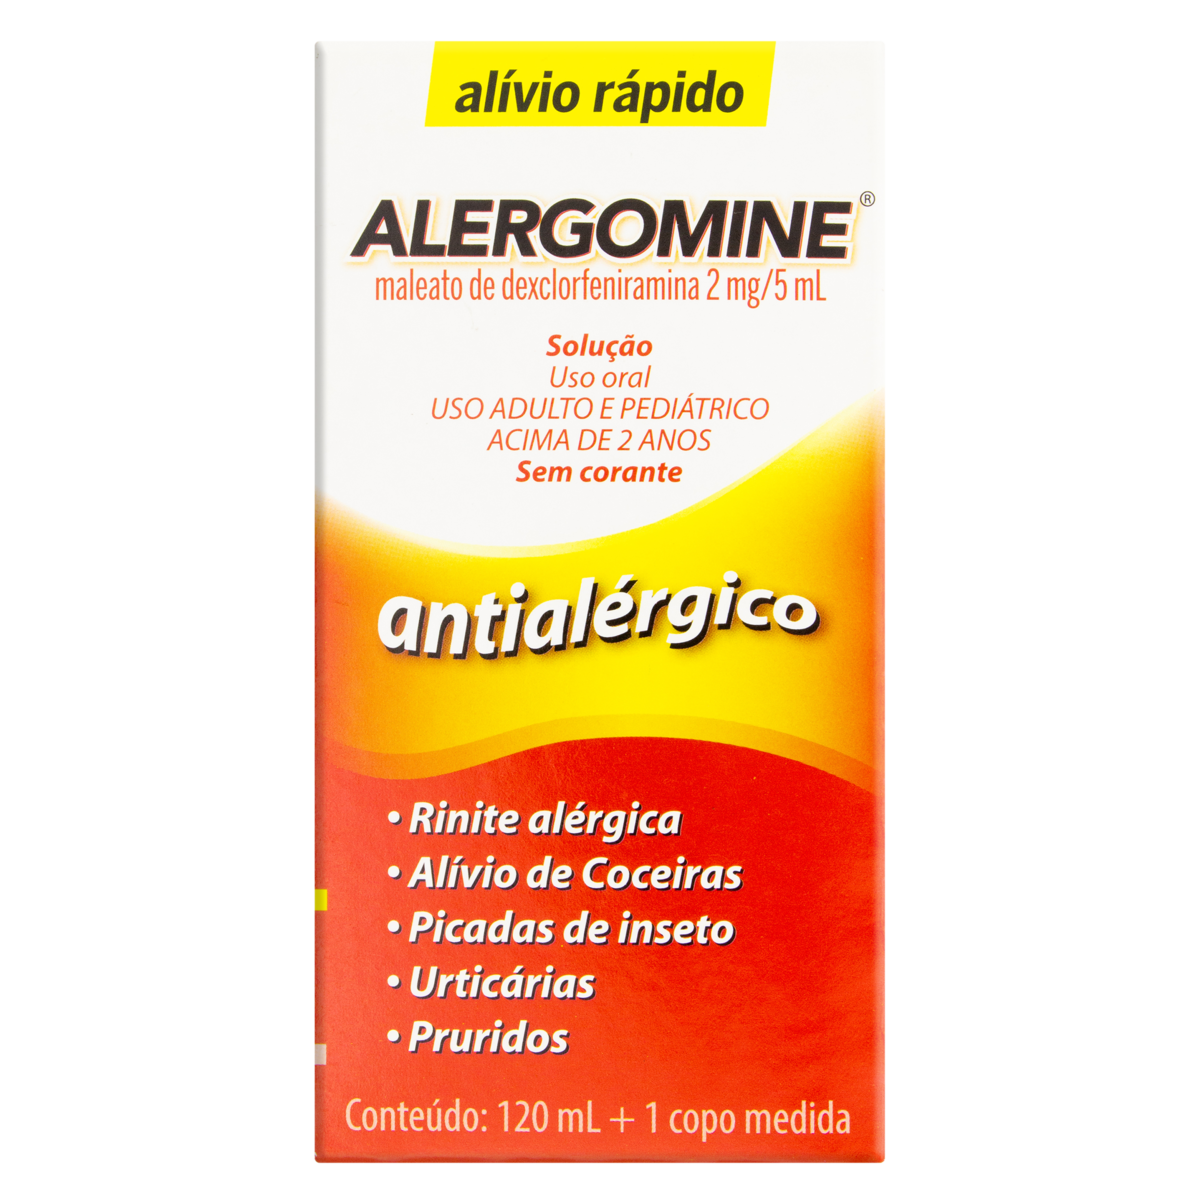 7896523209425 - ALERGOMINE 2MG/5ML CIMED CAIXA 120ML + COPO MEDIDA